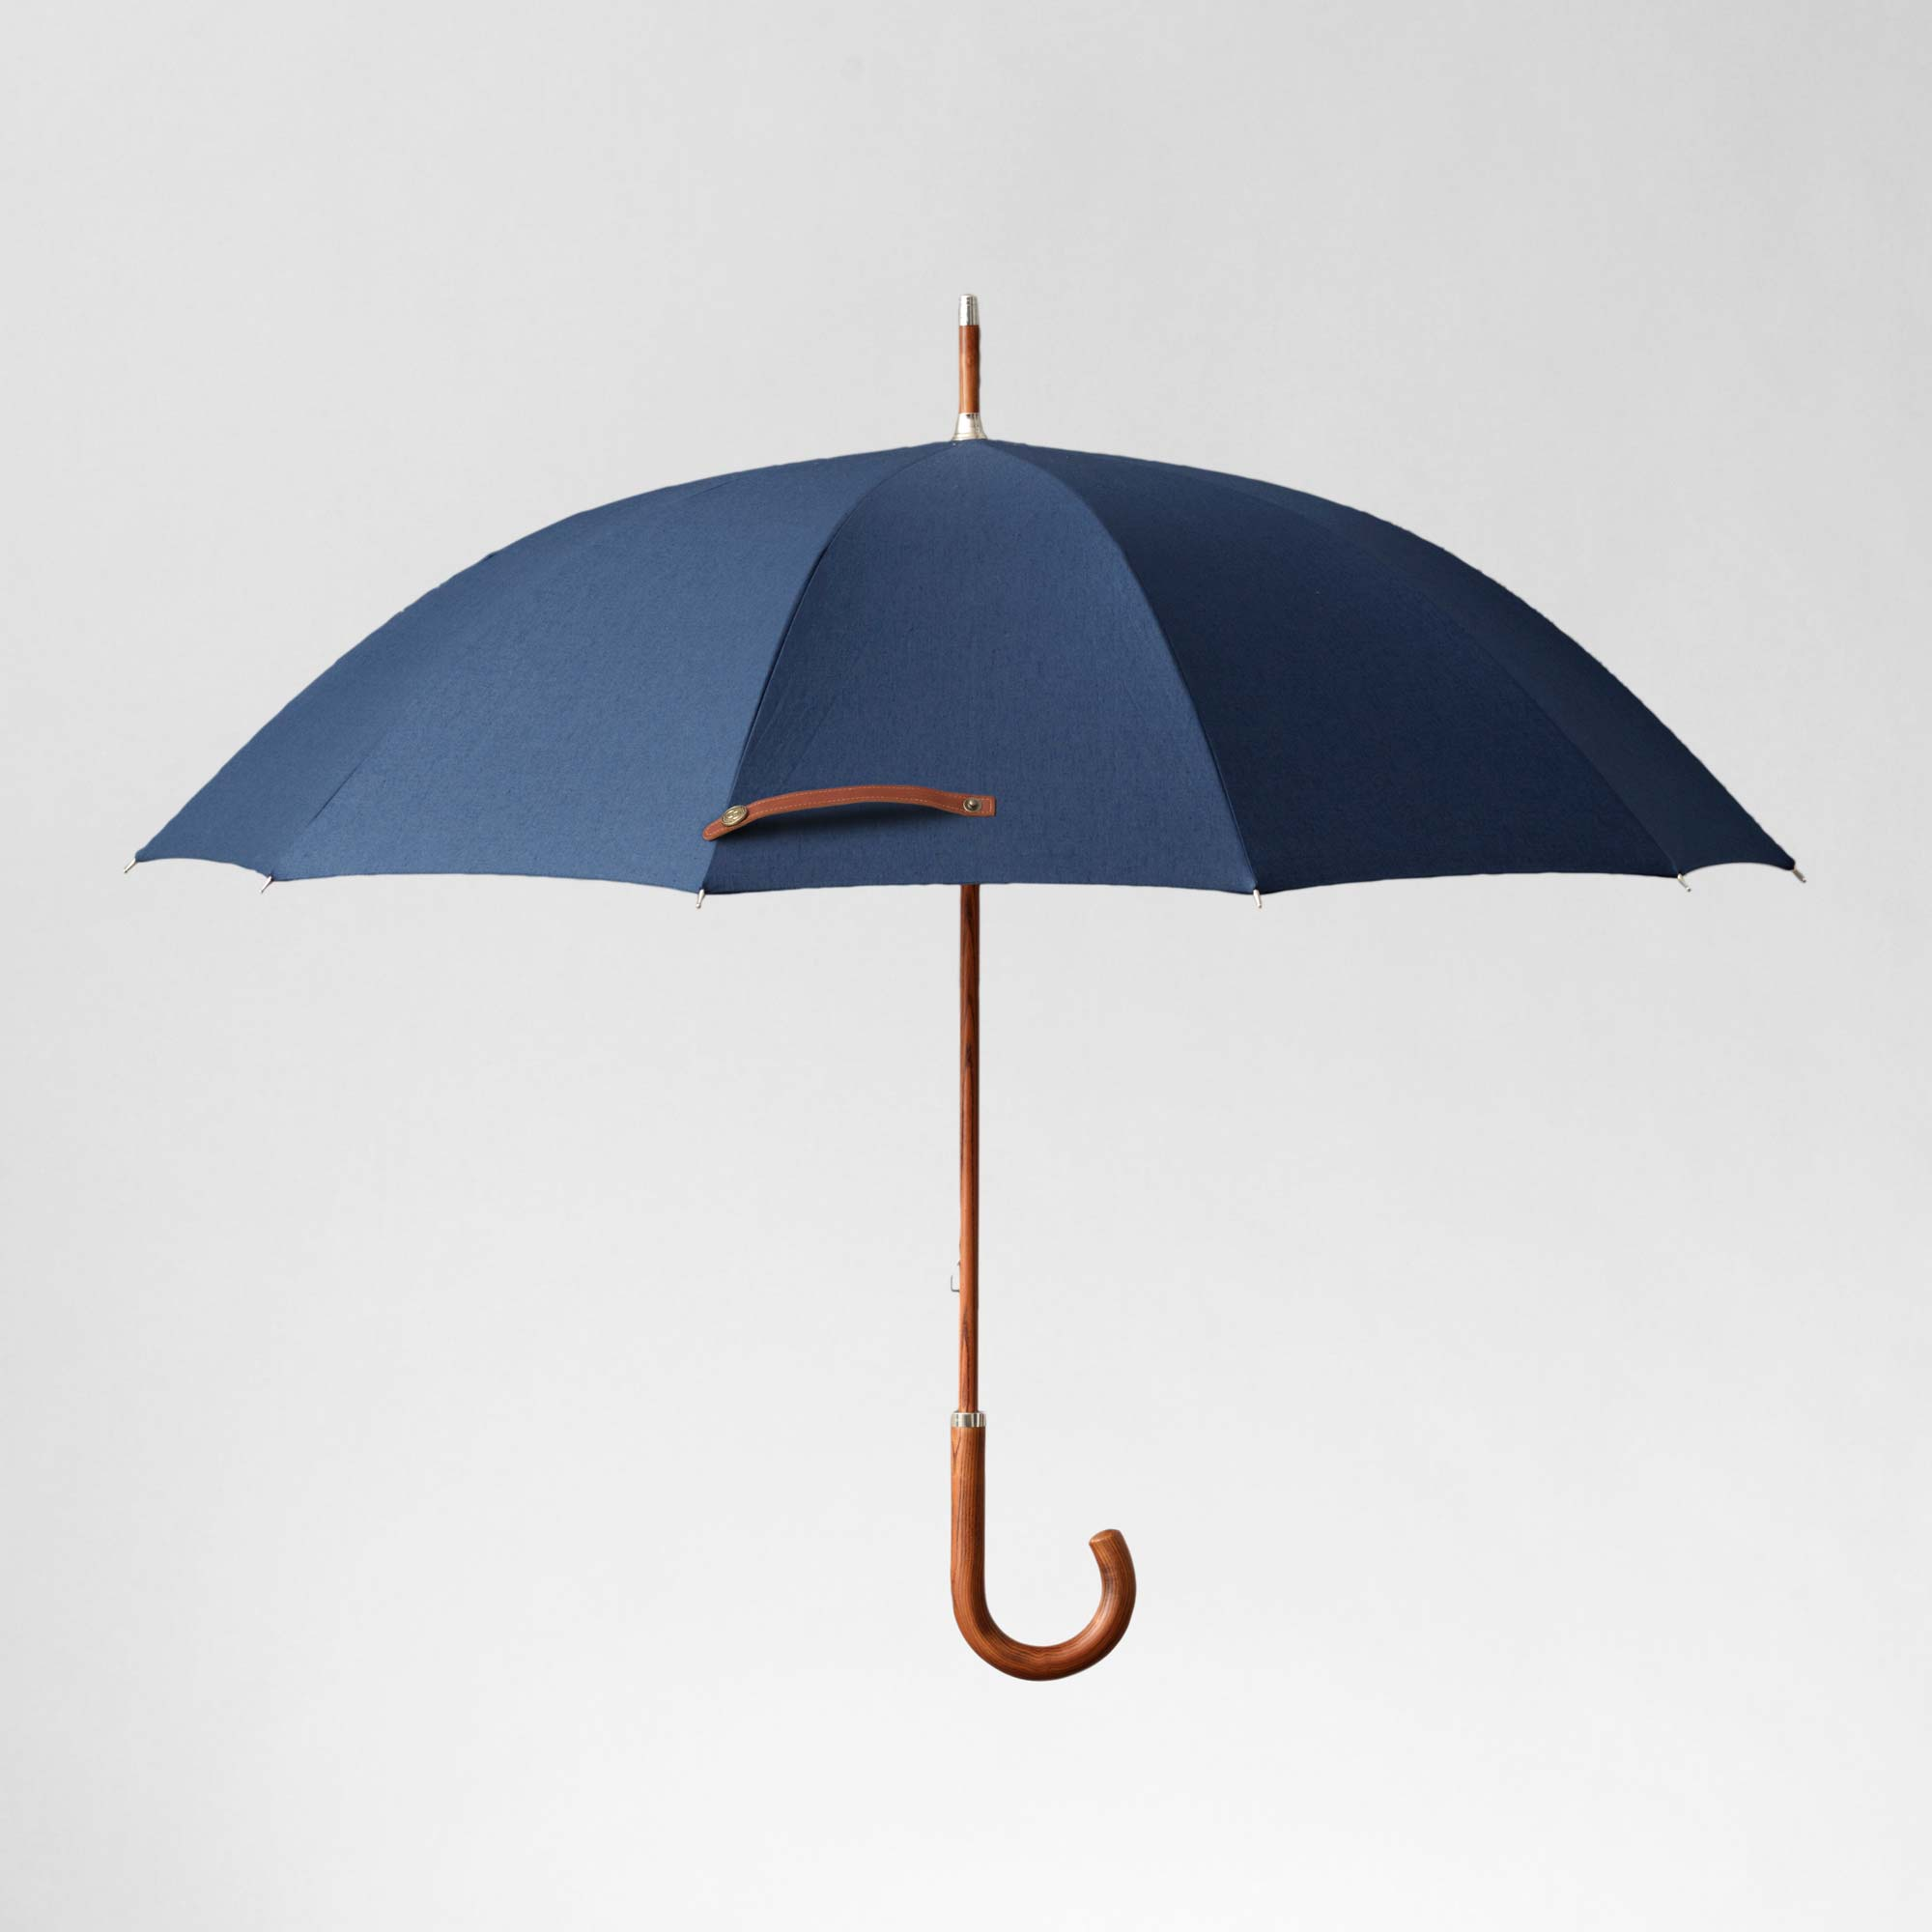 A high quality classic blue umbrella